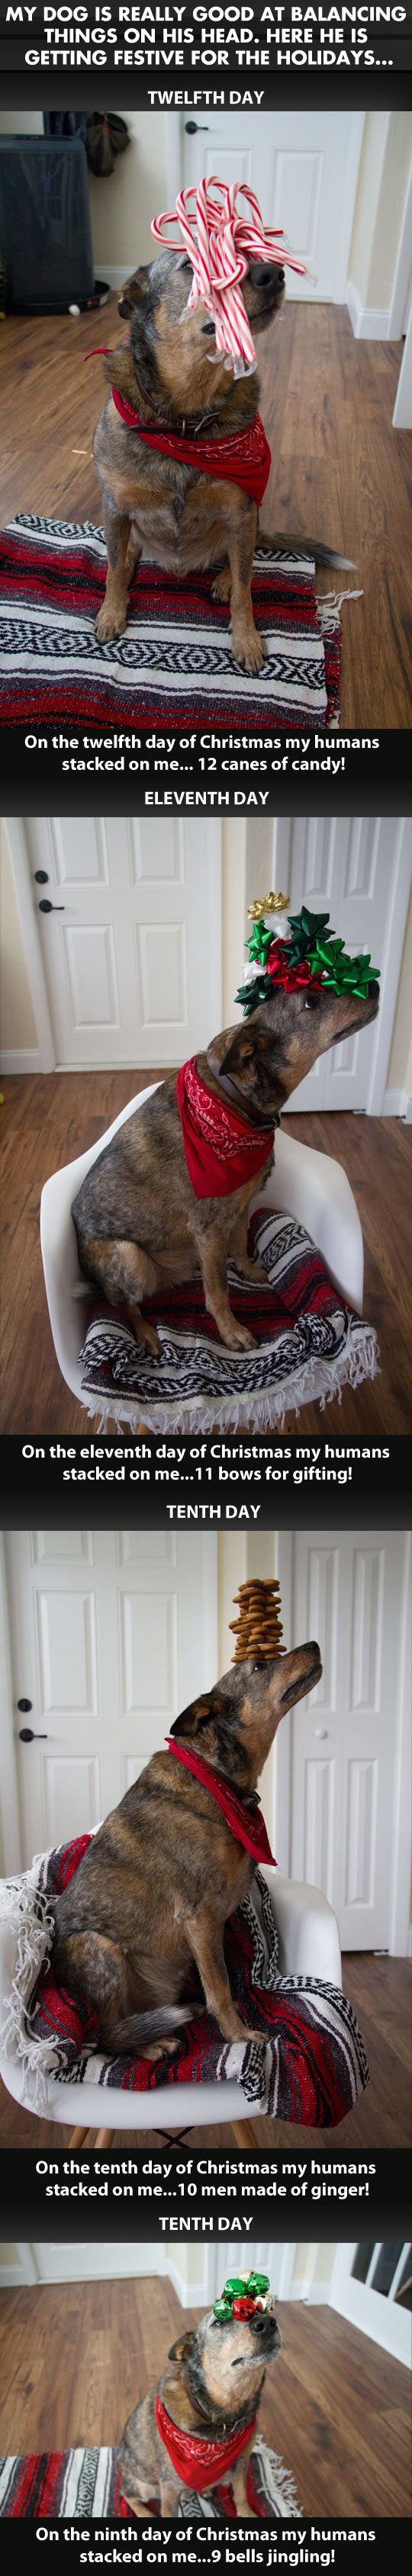 funny-Christmas-candy-bow-cookie-days-dog